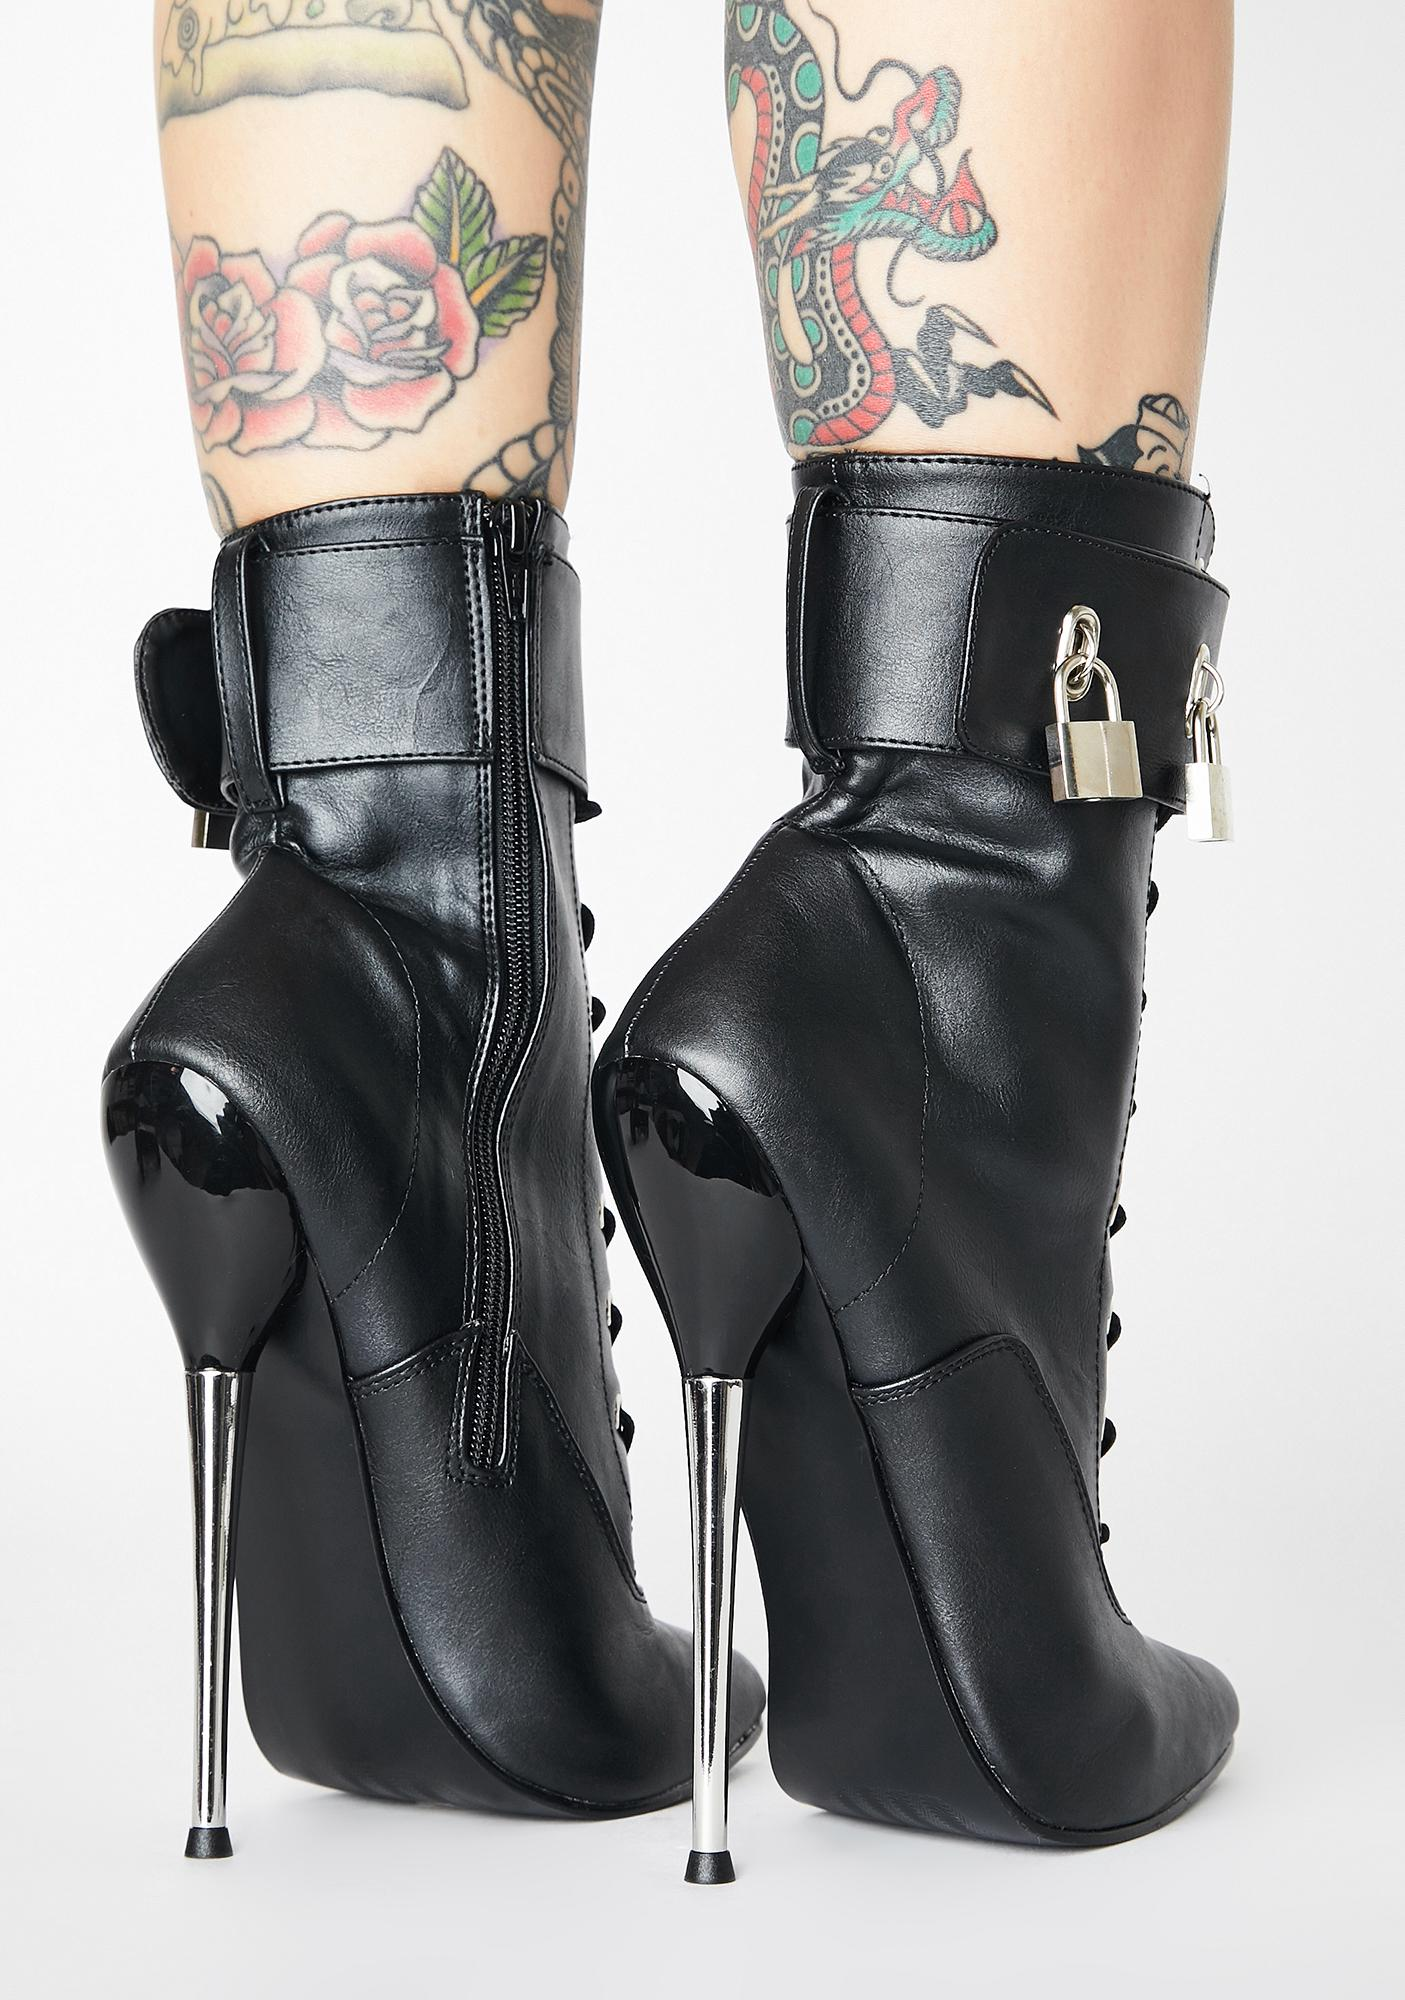 Pleaser Lust Locked Up Stiletto Boots